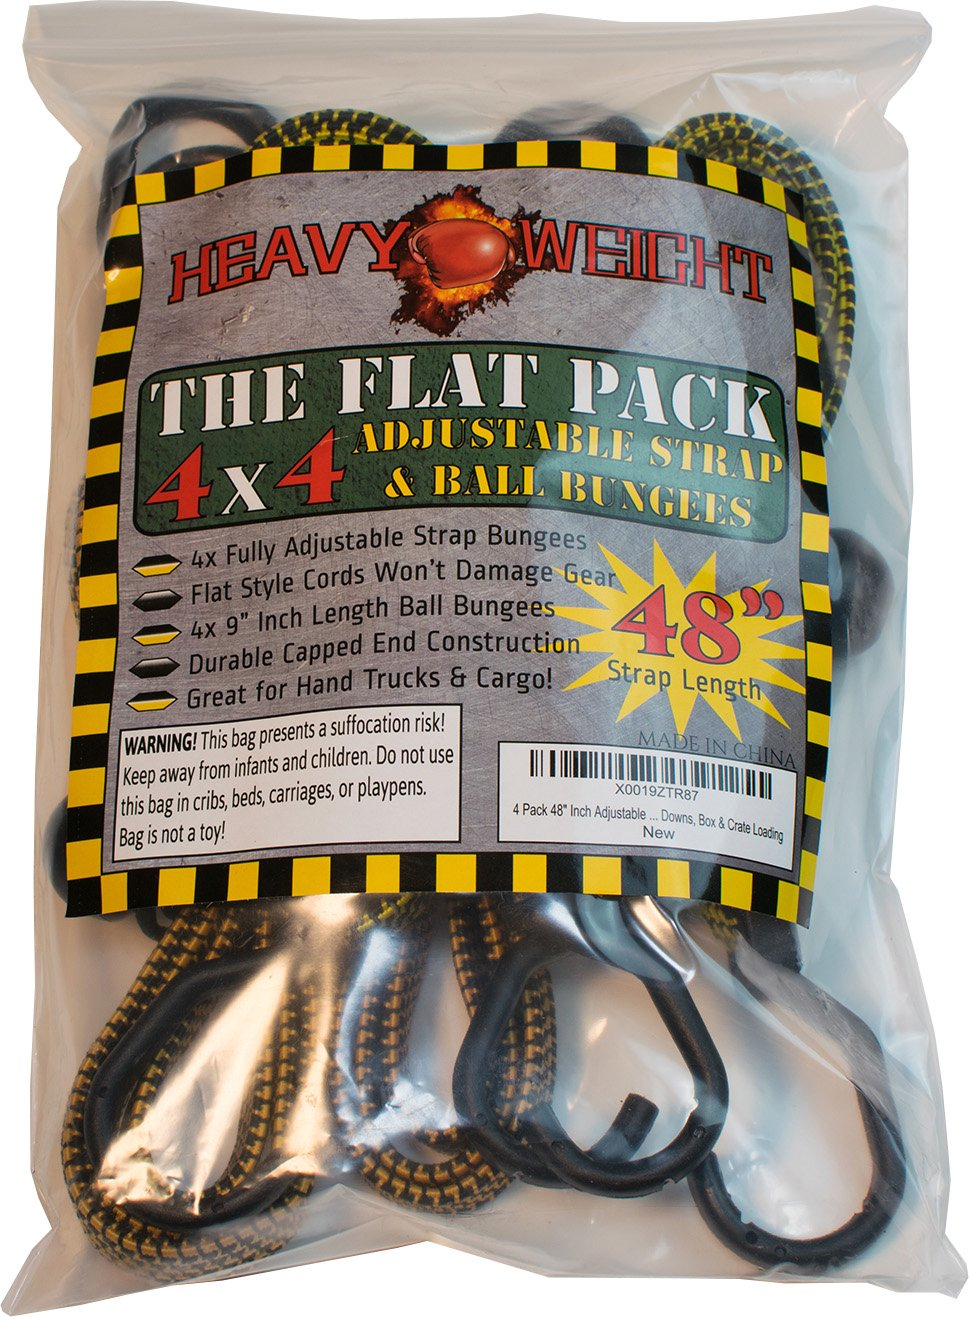 HeavyWeight Flat Bungee Cords 4 PACK with BONUS 4 Ball Bungees | 48'' INCH Total Length with Adjustable Length Hooks | Hand Carts, Dolly, Cargo, Moving, Camping, RV, Trunk, Luggage Rack, Tarp Tie Down by Heavy Weight (Image #7)